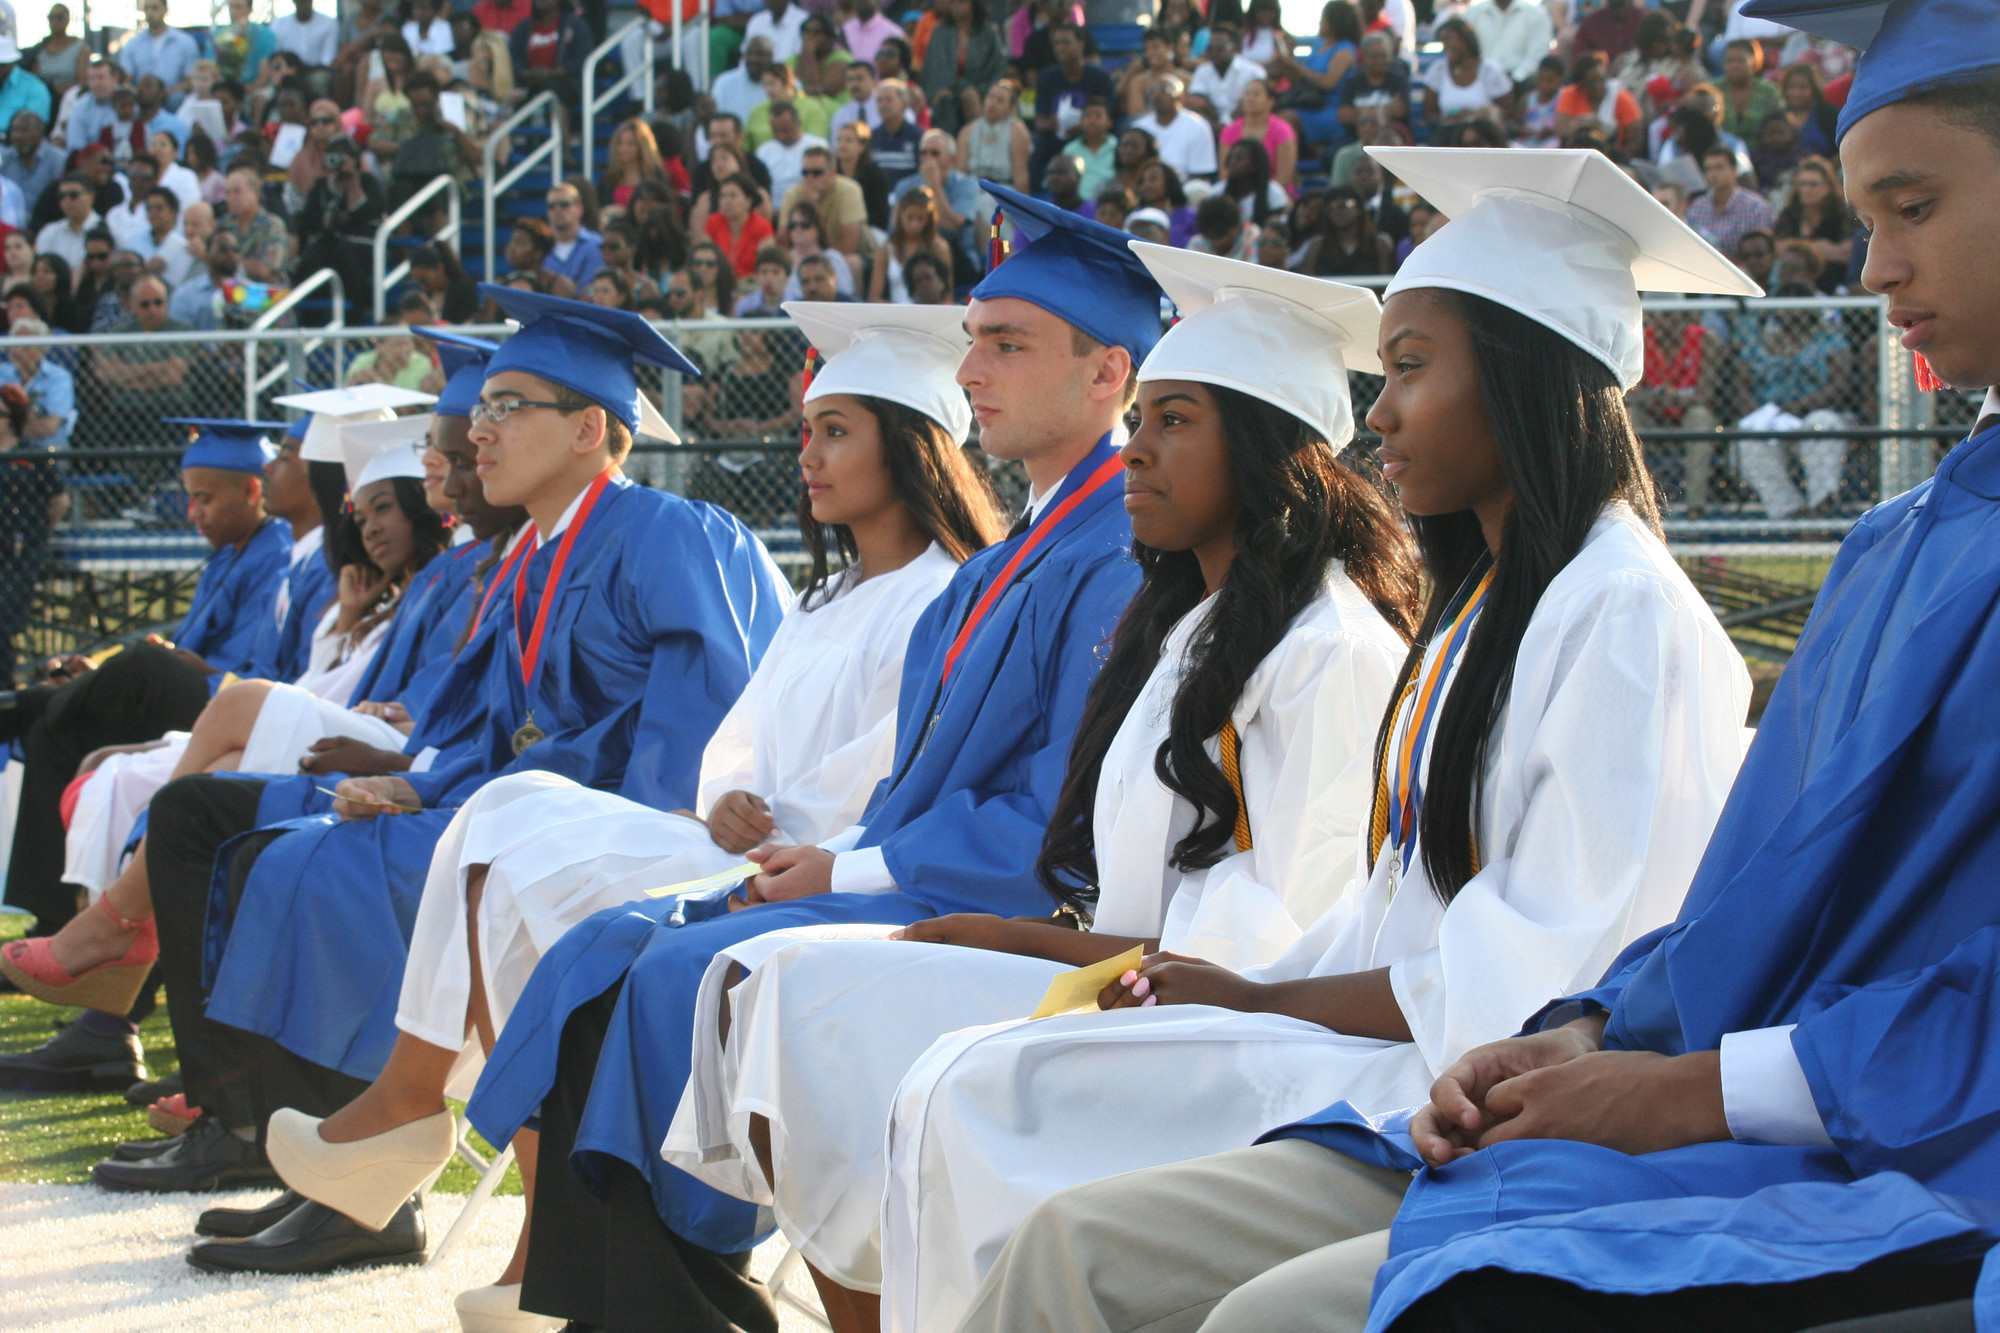 Malverne High School graduates listened to Superintendent Dr. James Hunderfund as they awaited the presentation of diplomas.